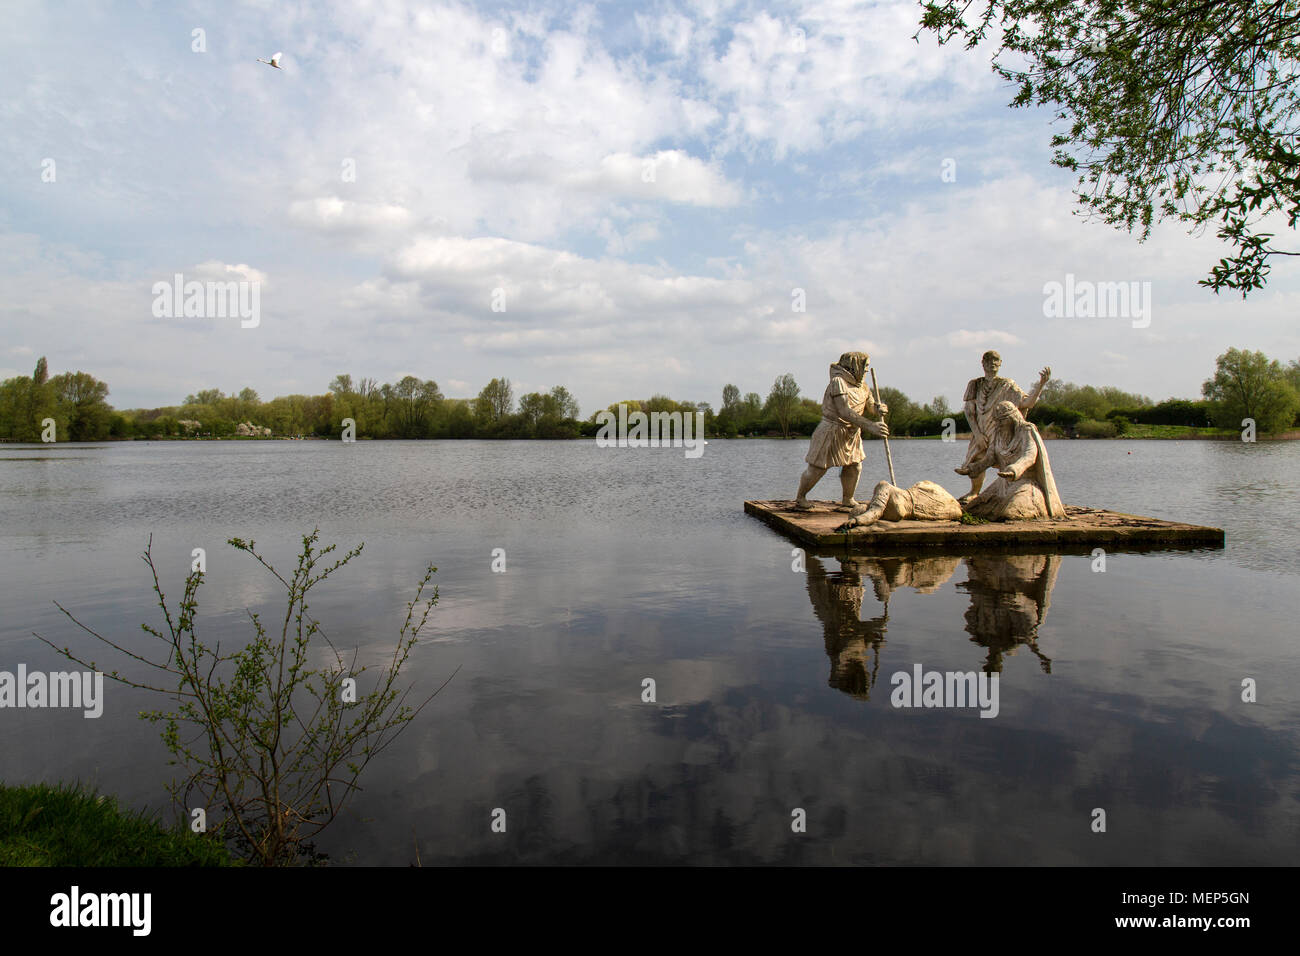 Watered Country Park in Leicestershire, England,  a network of lakes woodlands and nature reserves created from 340 acres of gravel workings. - Stock Image